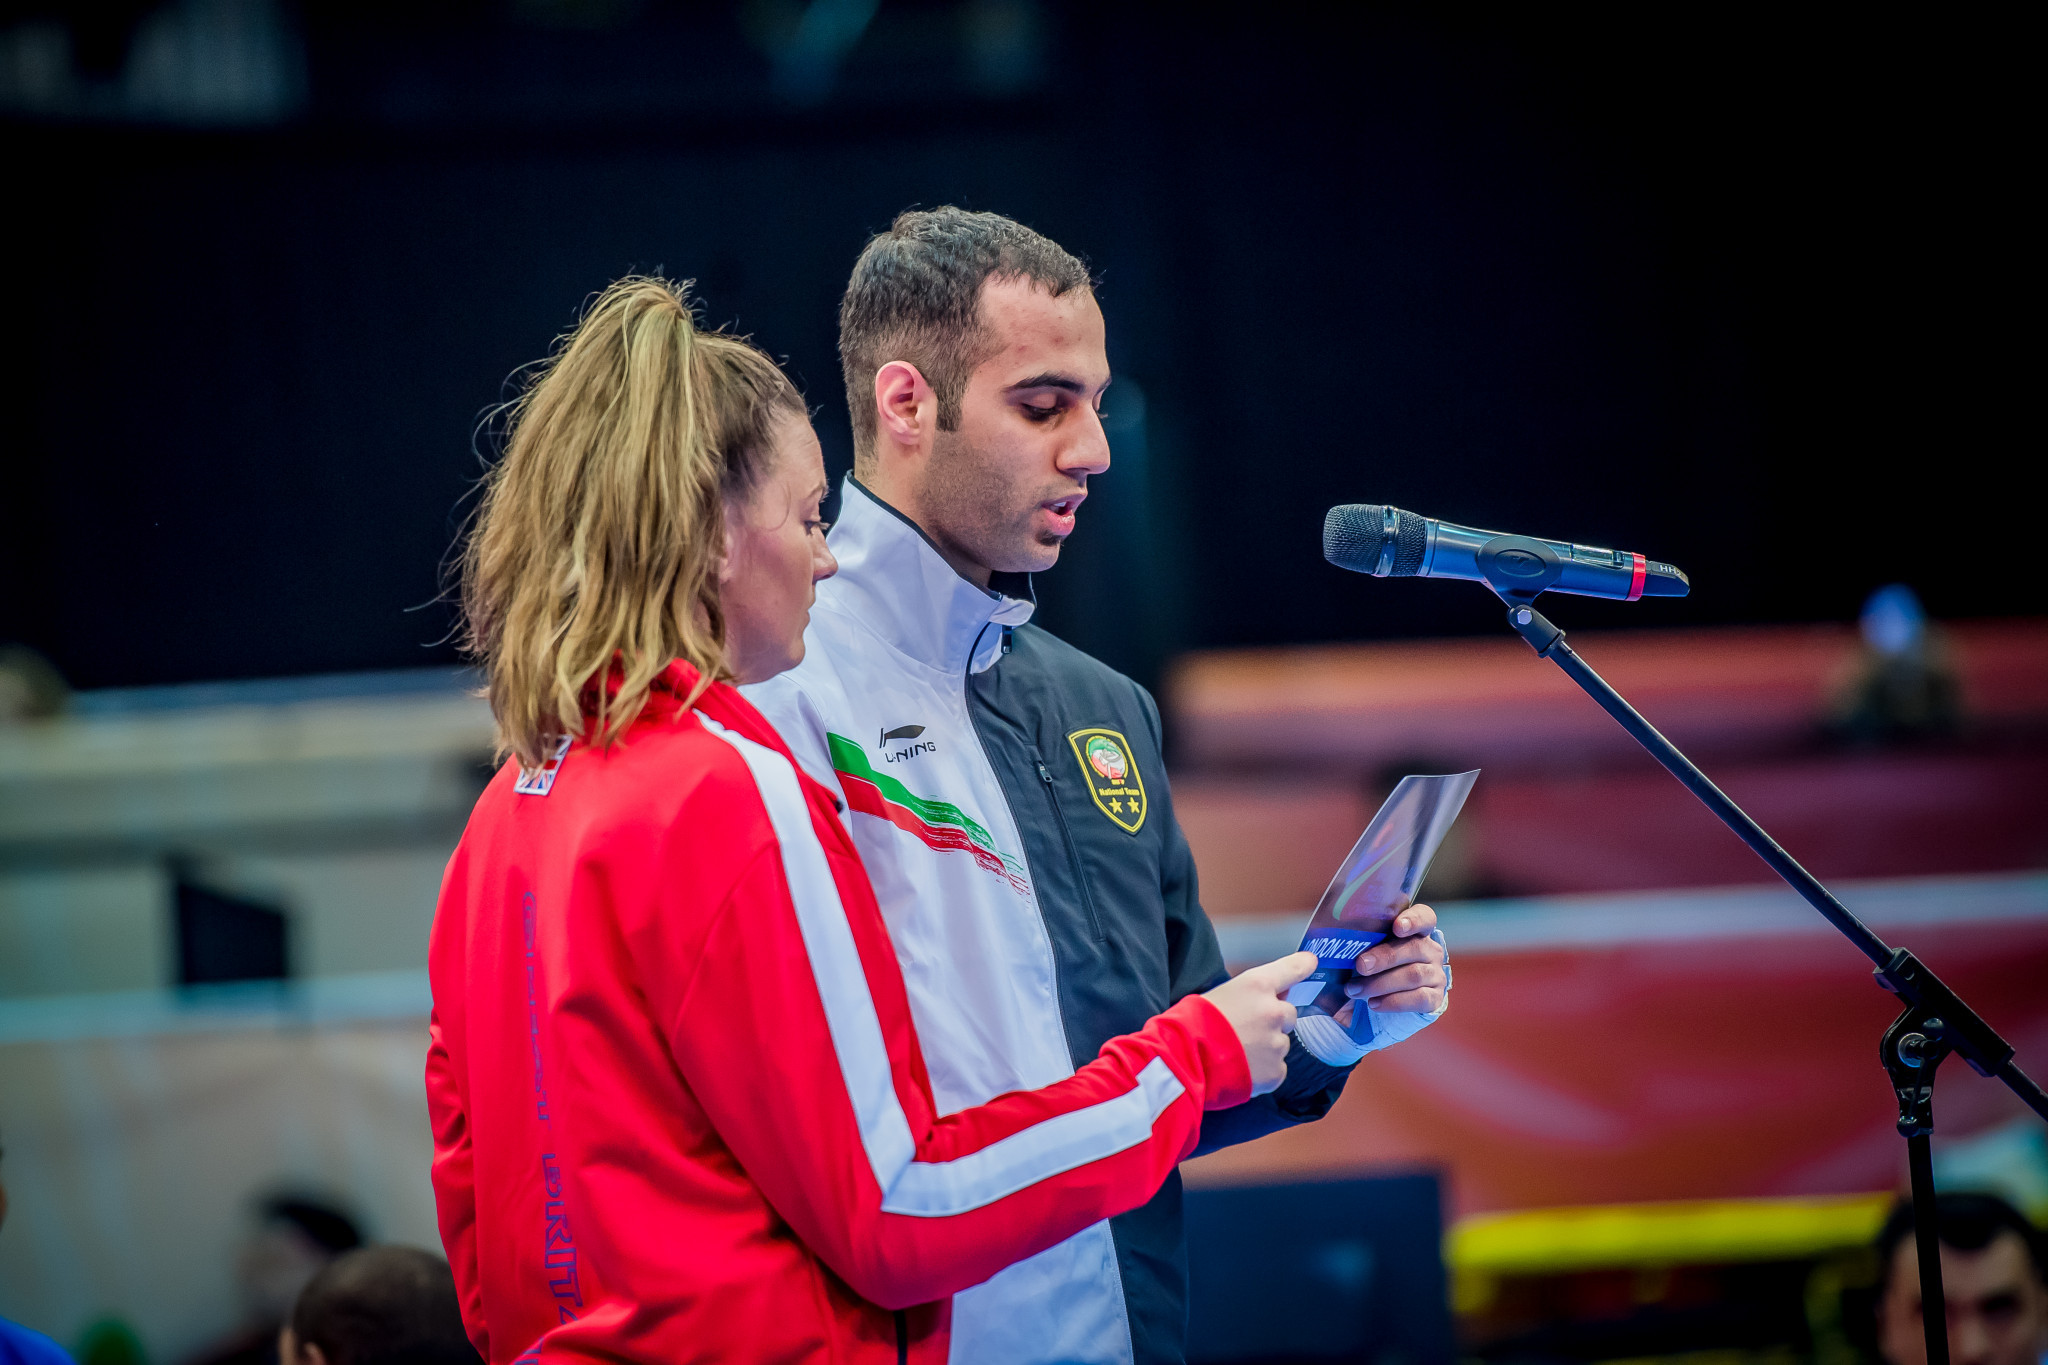 Truesdale and Iran's Mahdi Pourrahnama read the athletes' oath ©World Taekwondo